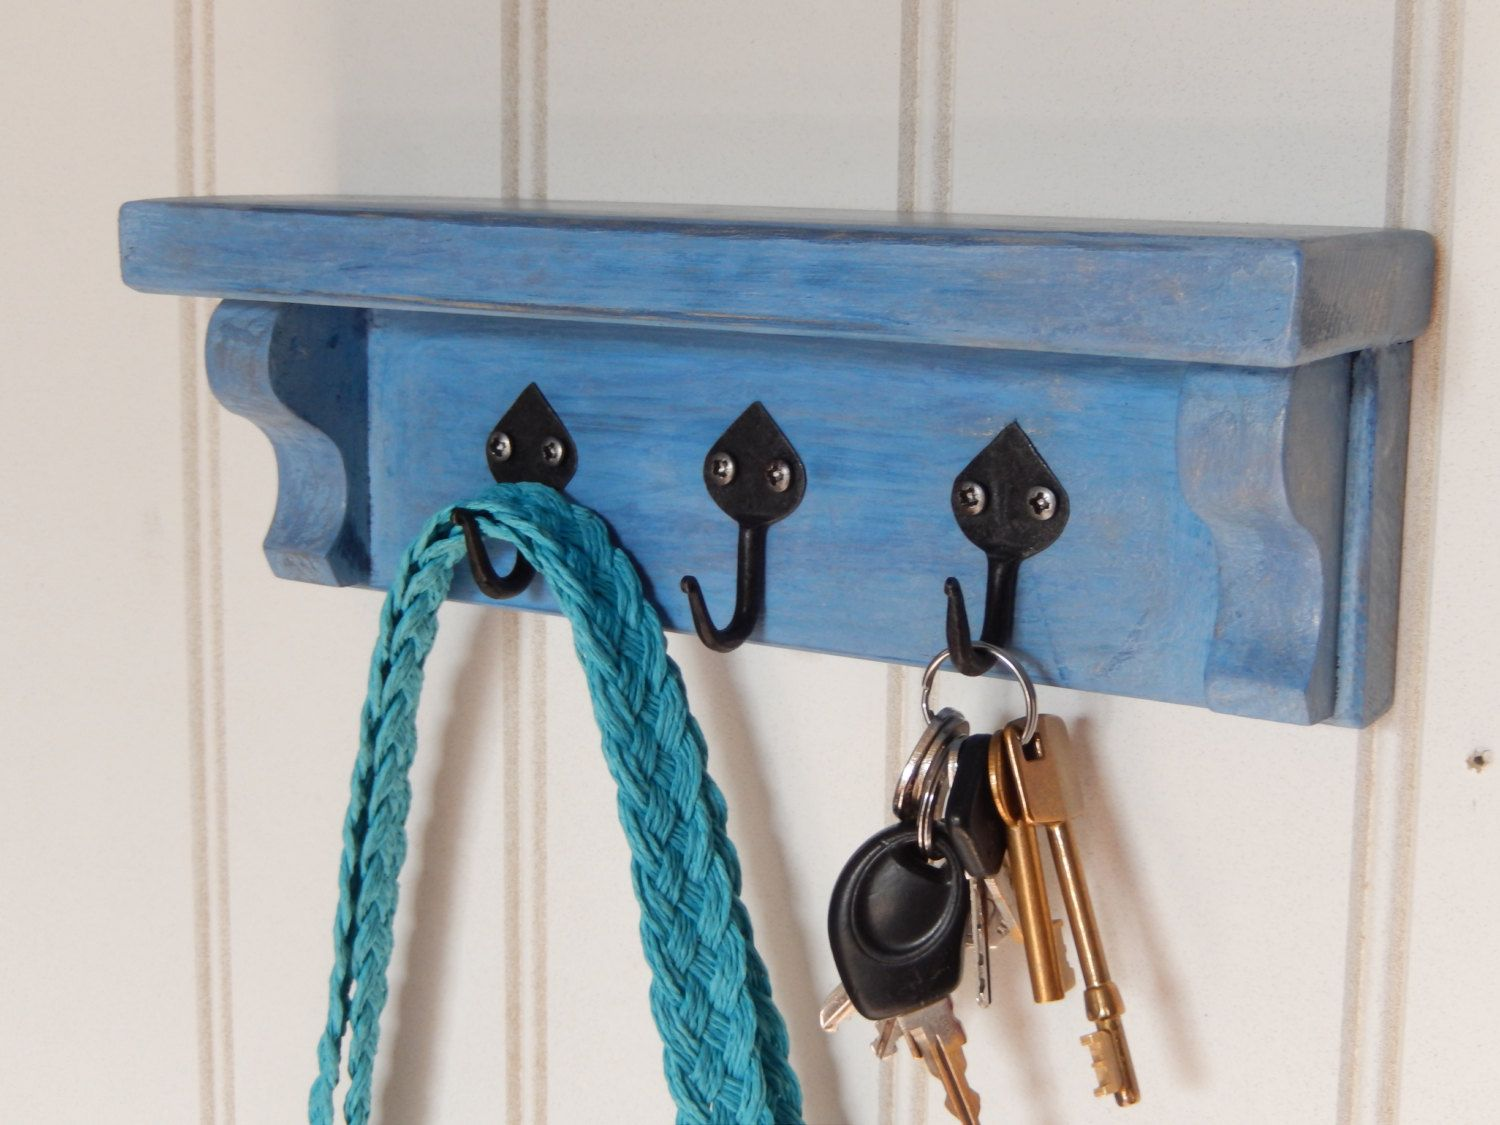 Painted Blue Shelf With Gothic Style Iron Hooks For Keys Dog Leads Tea Towels